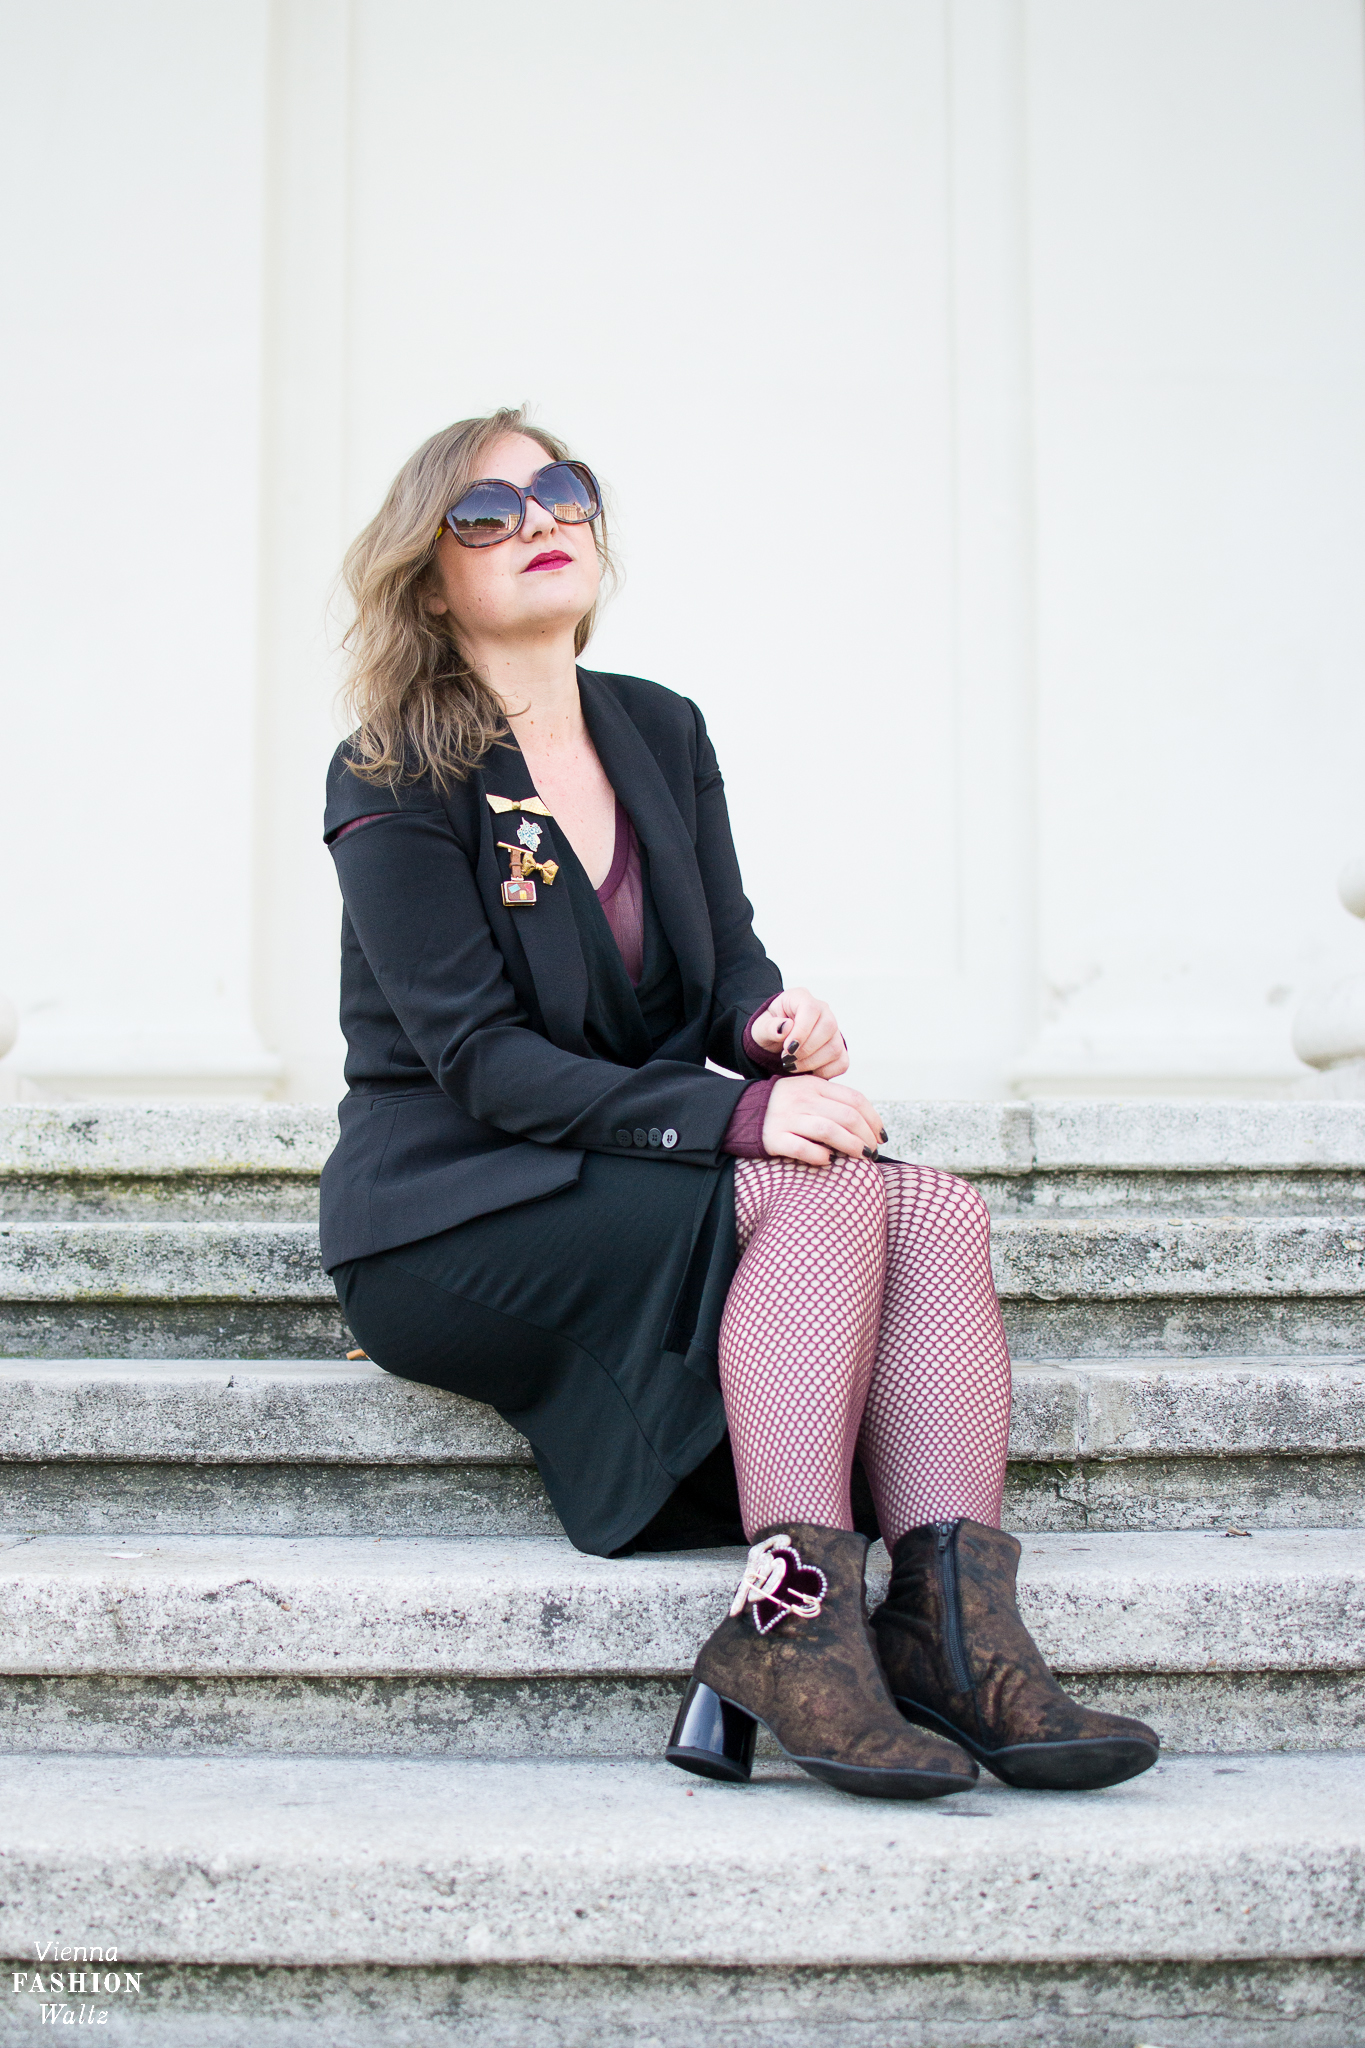 Fashion Trends 2017: Velvet Brokat Sheer Look Patches | Vienna Streetstyle